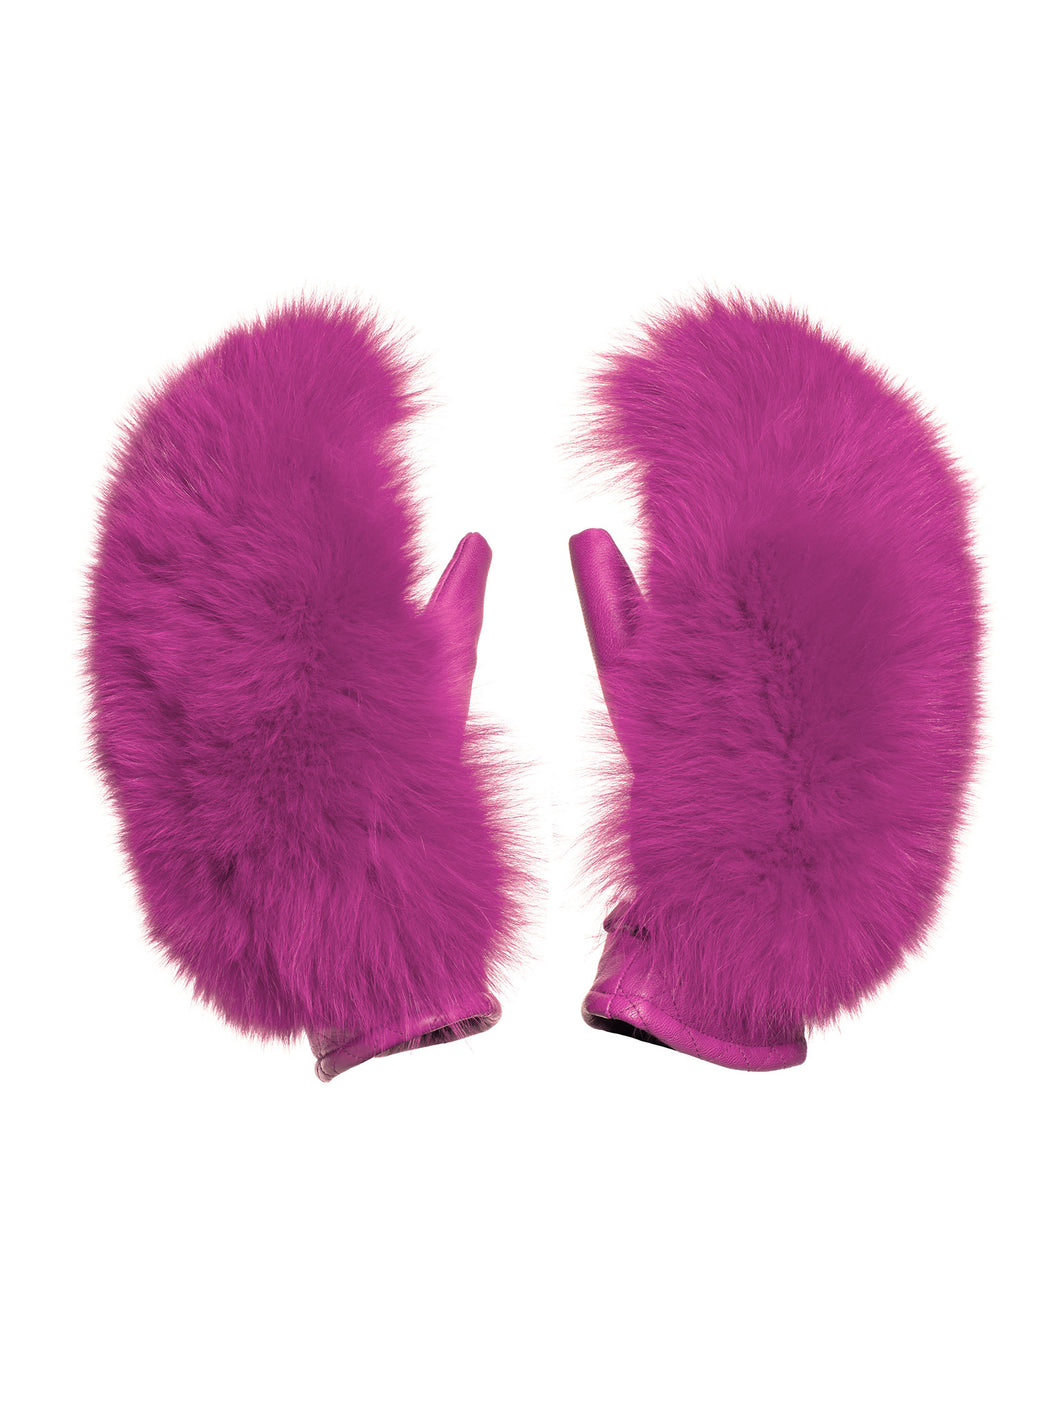 Hando Mittens Real Coyote + Real Fox Fur - Pink